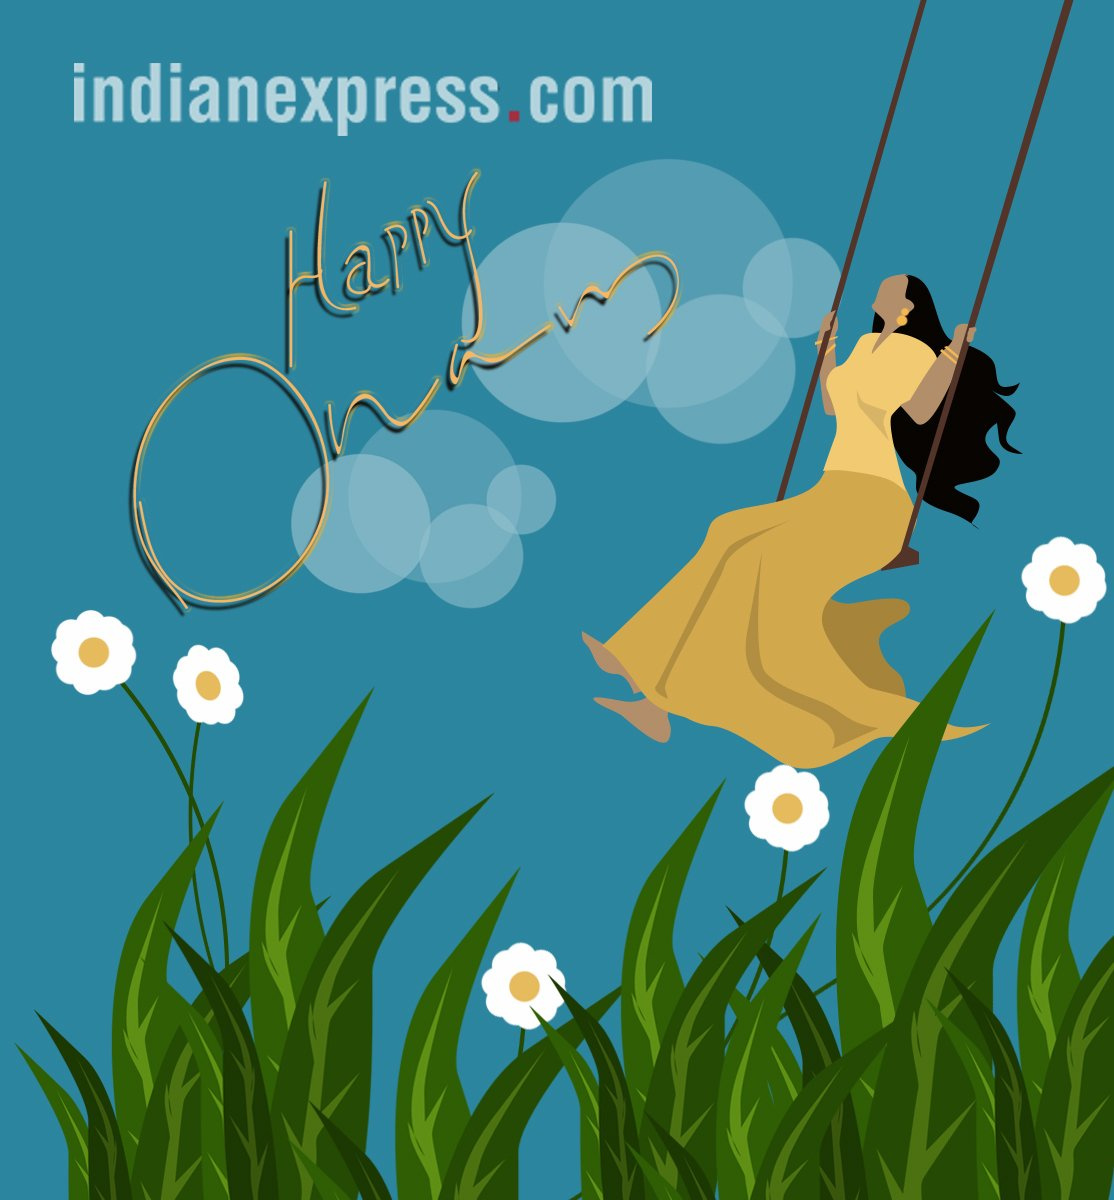 The Indian Express On Twitter Onam Greetings To All Best Wishes